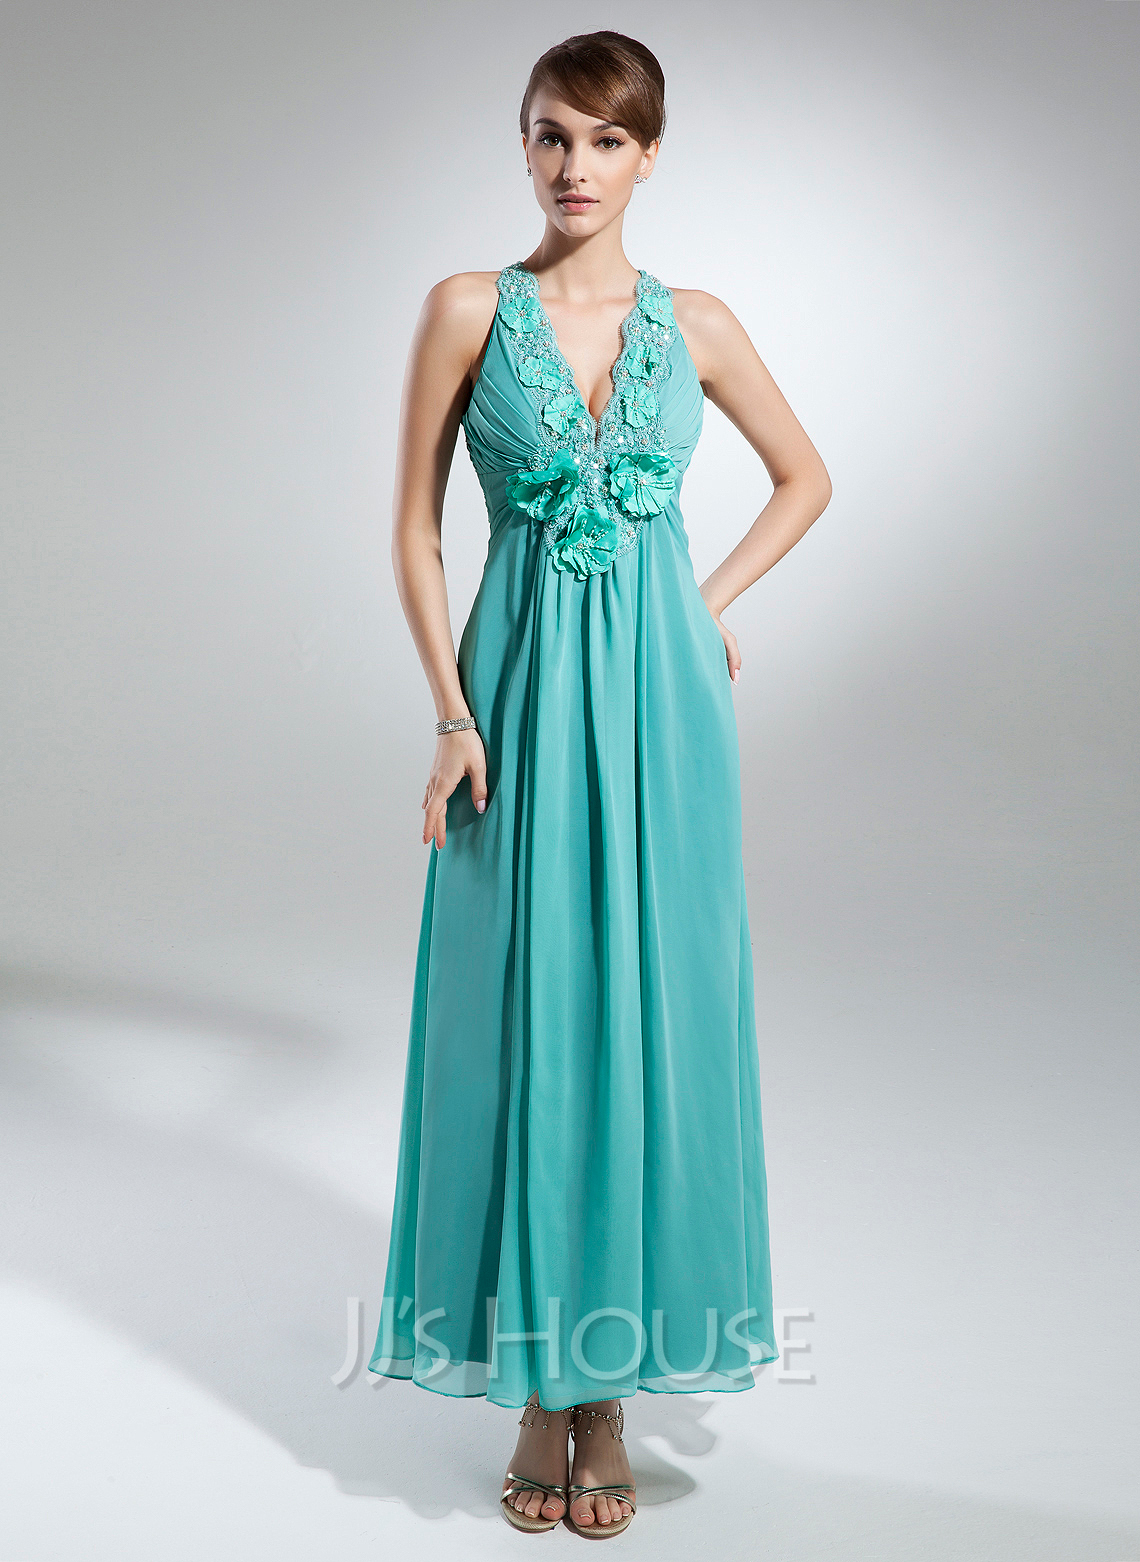 A-Line/Princess V-neck Ankle-Length Chiffon Holiday Dress With Ruffle Beading Flower(s)